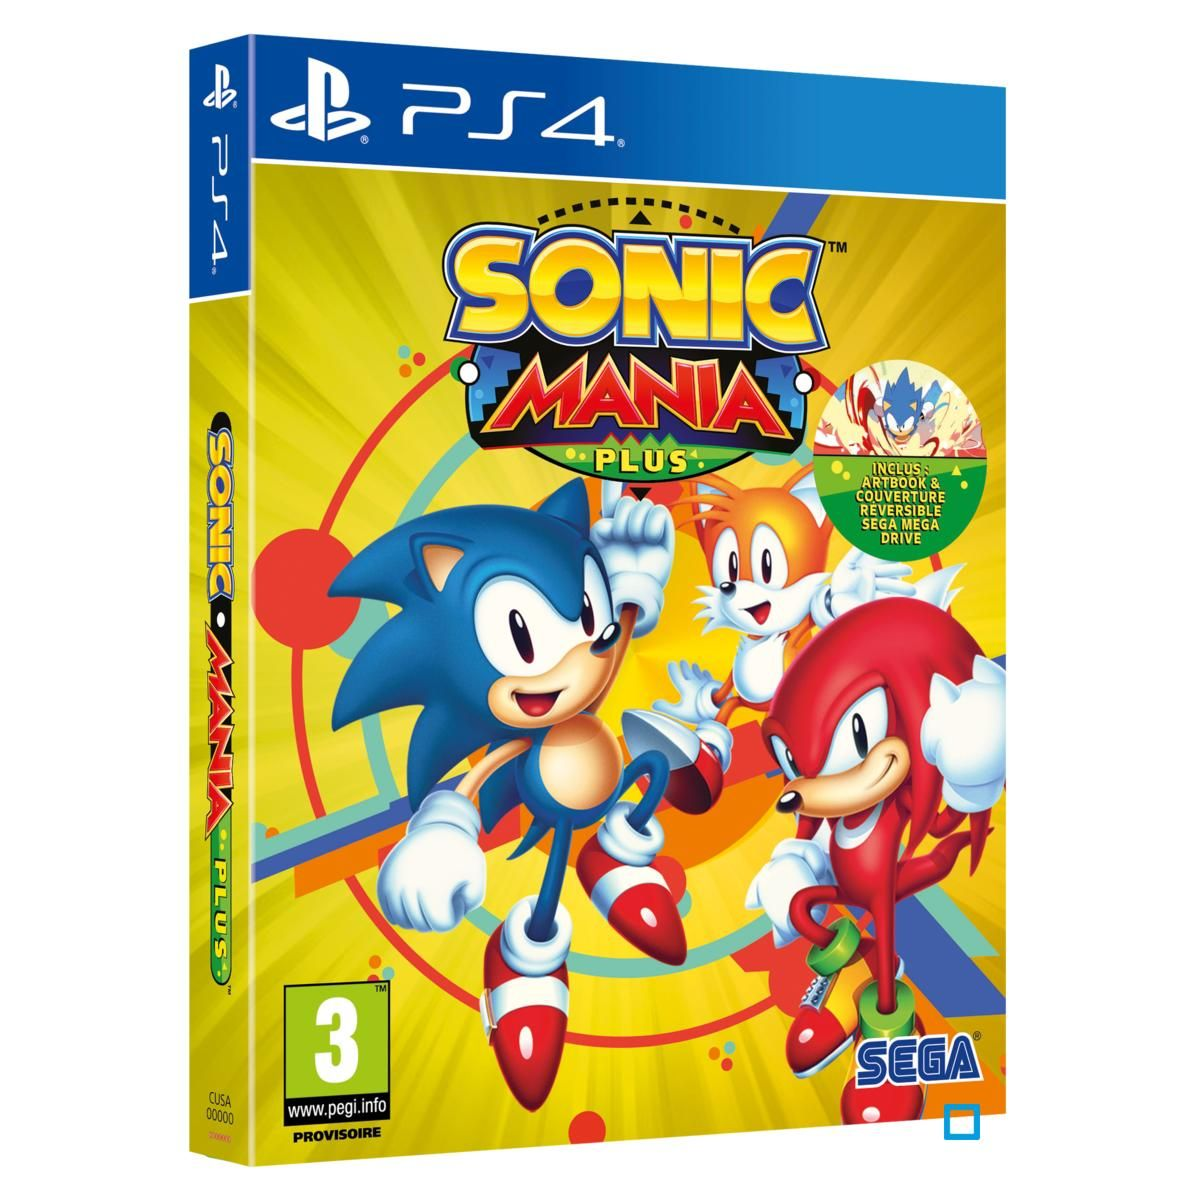 Sonic Mania Plus Ps4 Taille Taille Unique In 2019 Products